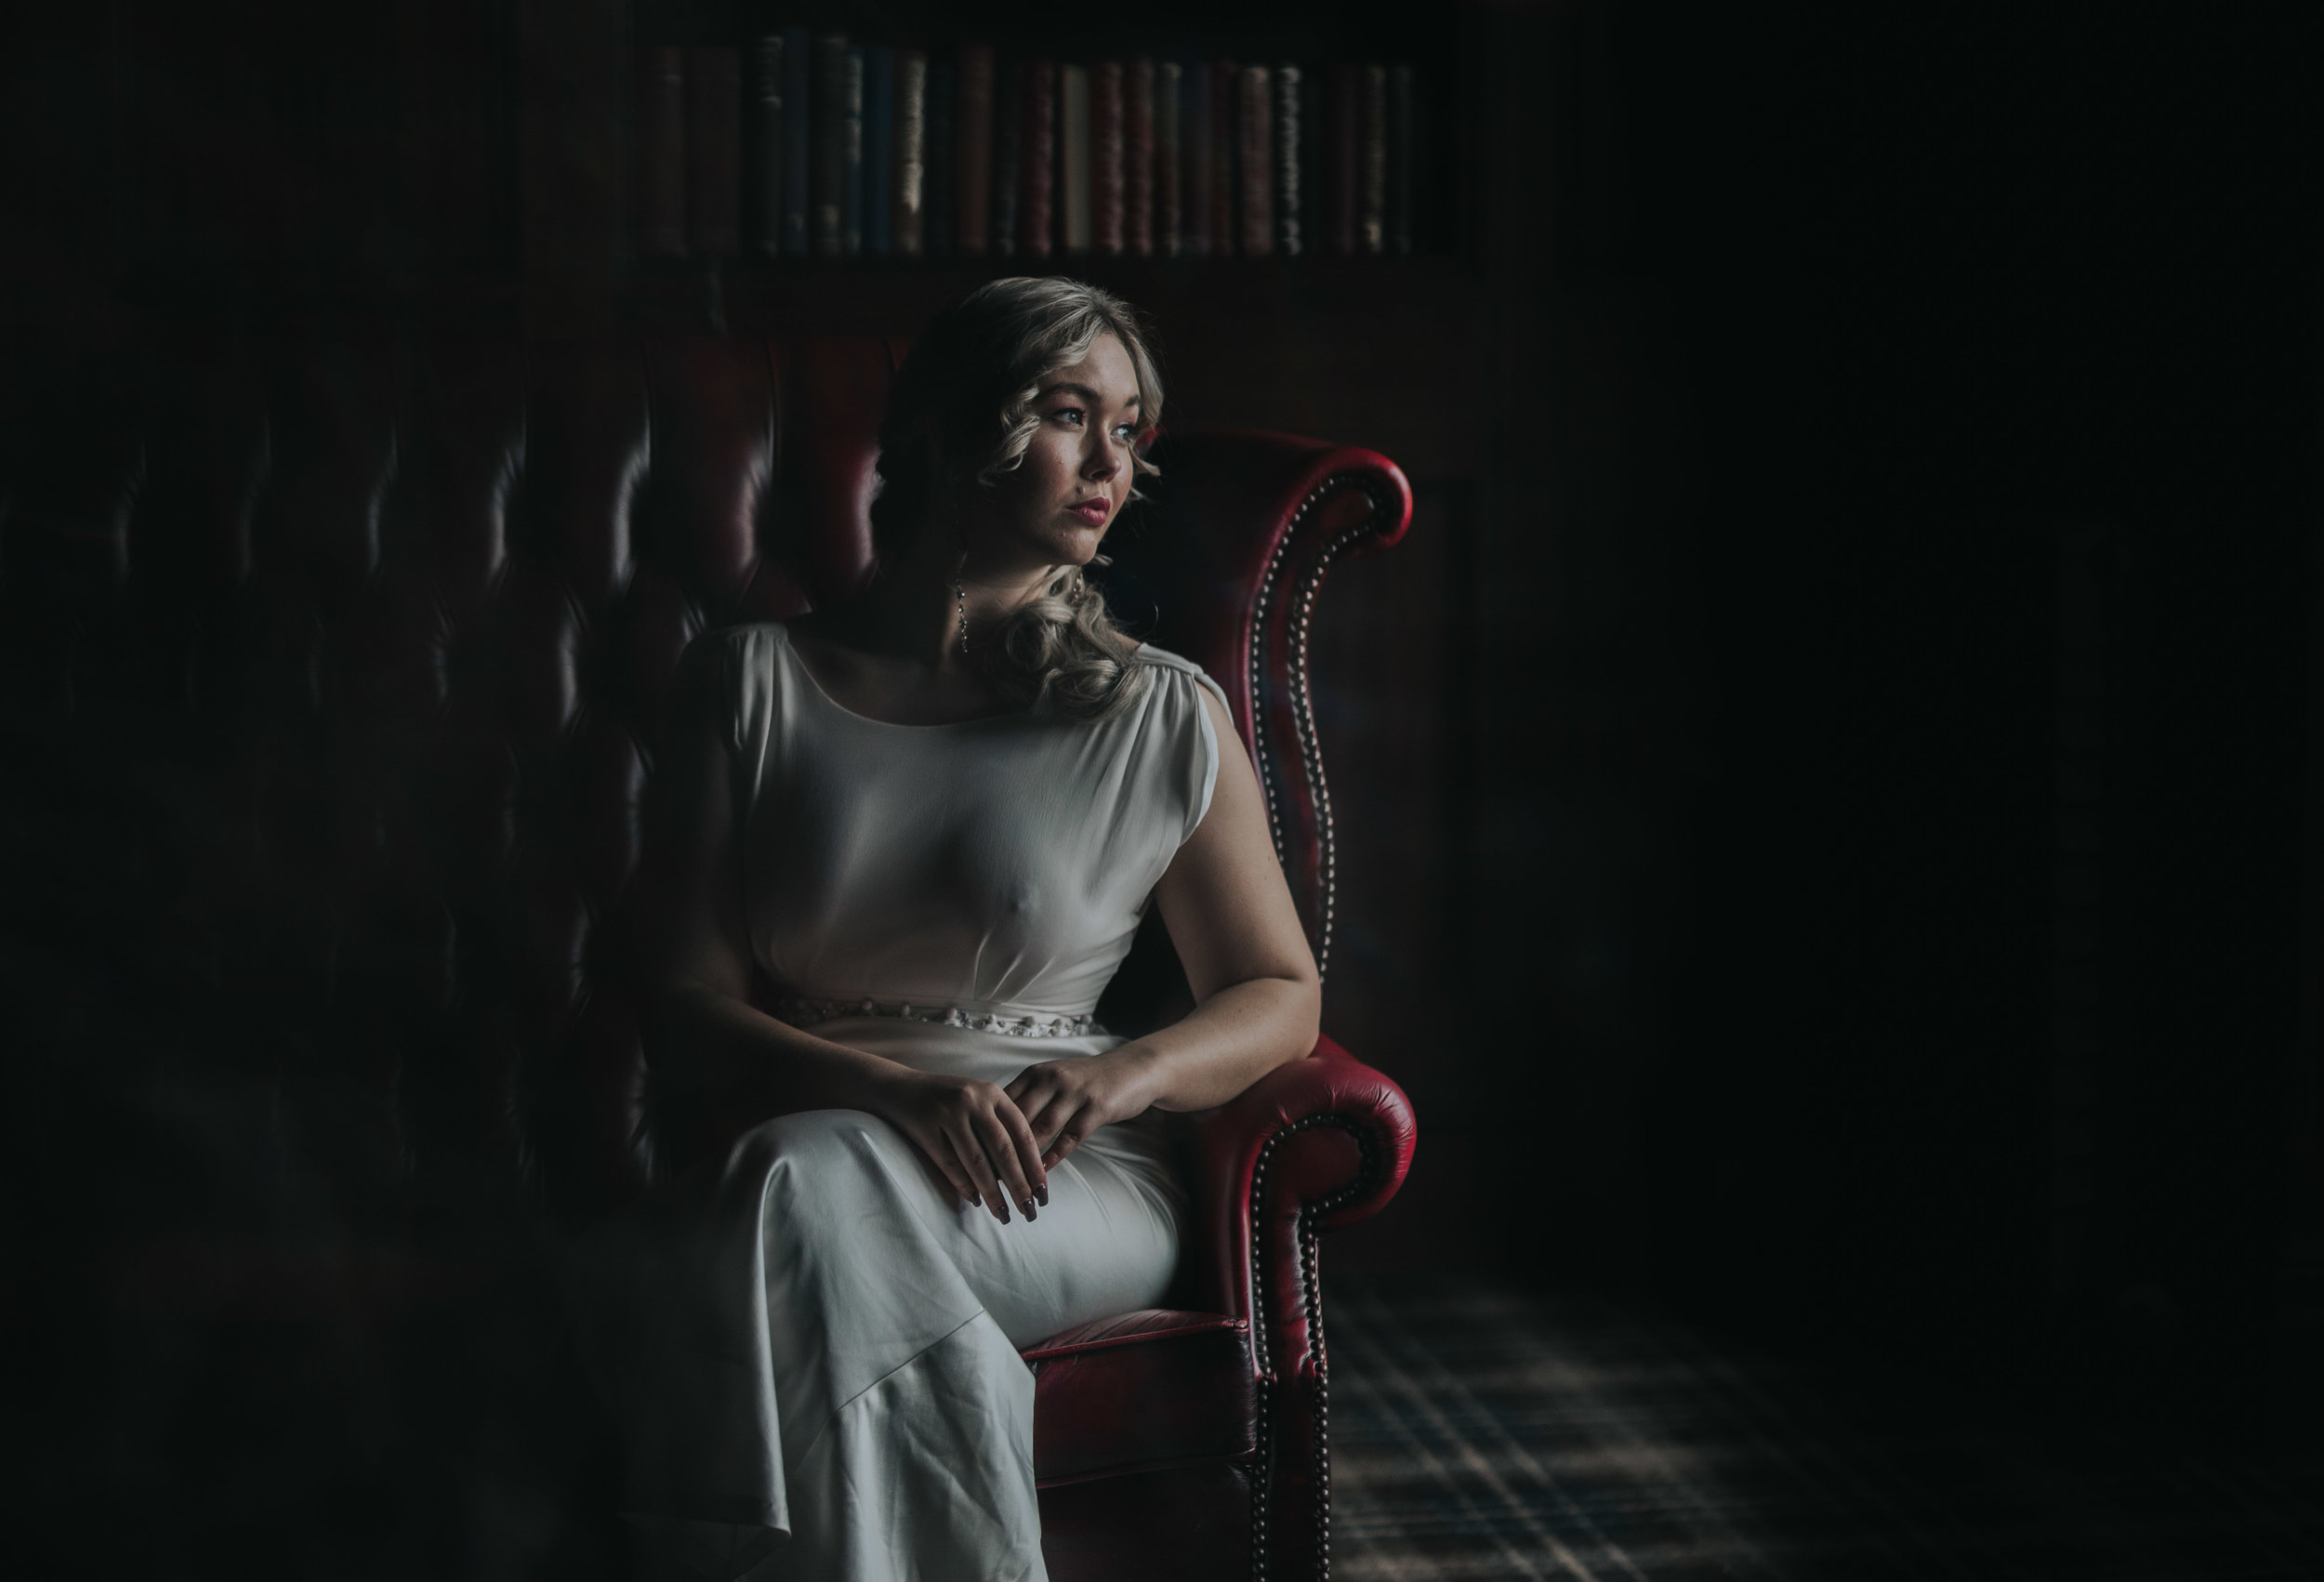 Bride sits on a dark red leather chair looking out of the window with the light flooding her face. The rest of the room is dark.